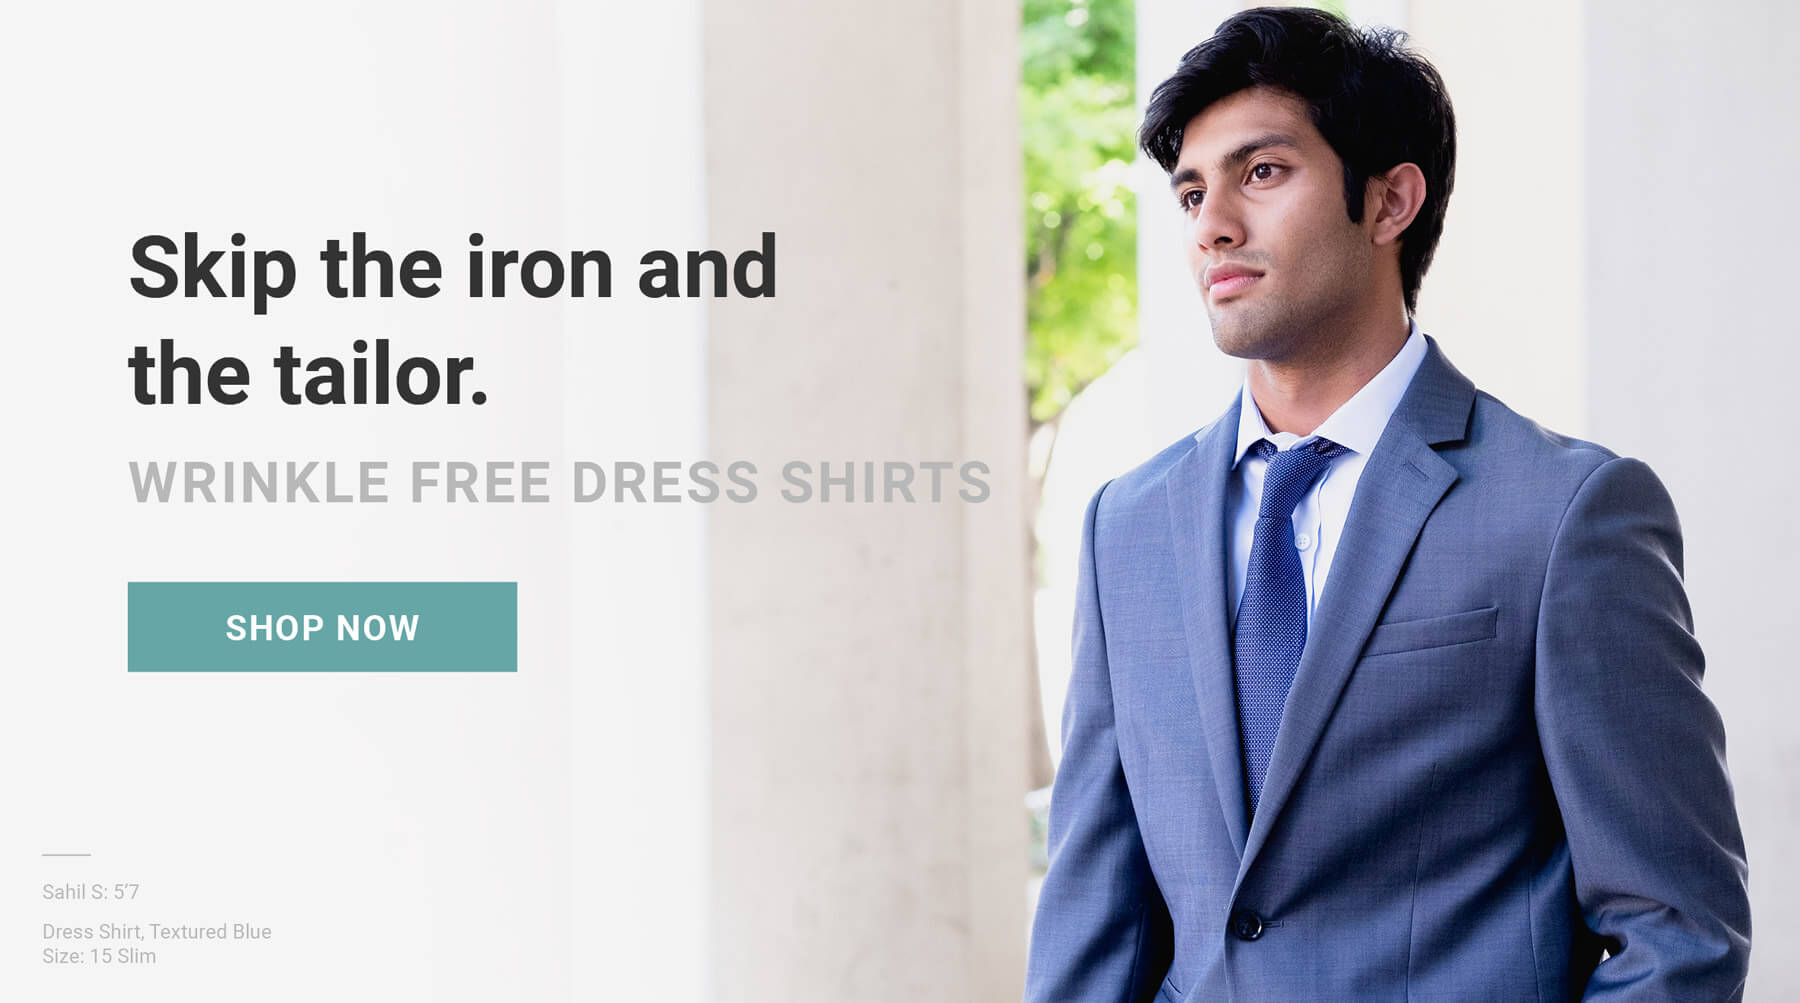 Made for men of great heights, shorter guy clothes. Dress shirts now available in 14 sizes. Shop now. As seen on Shark Tank!